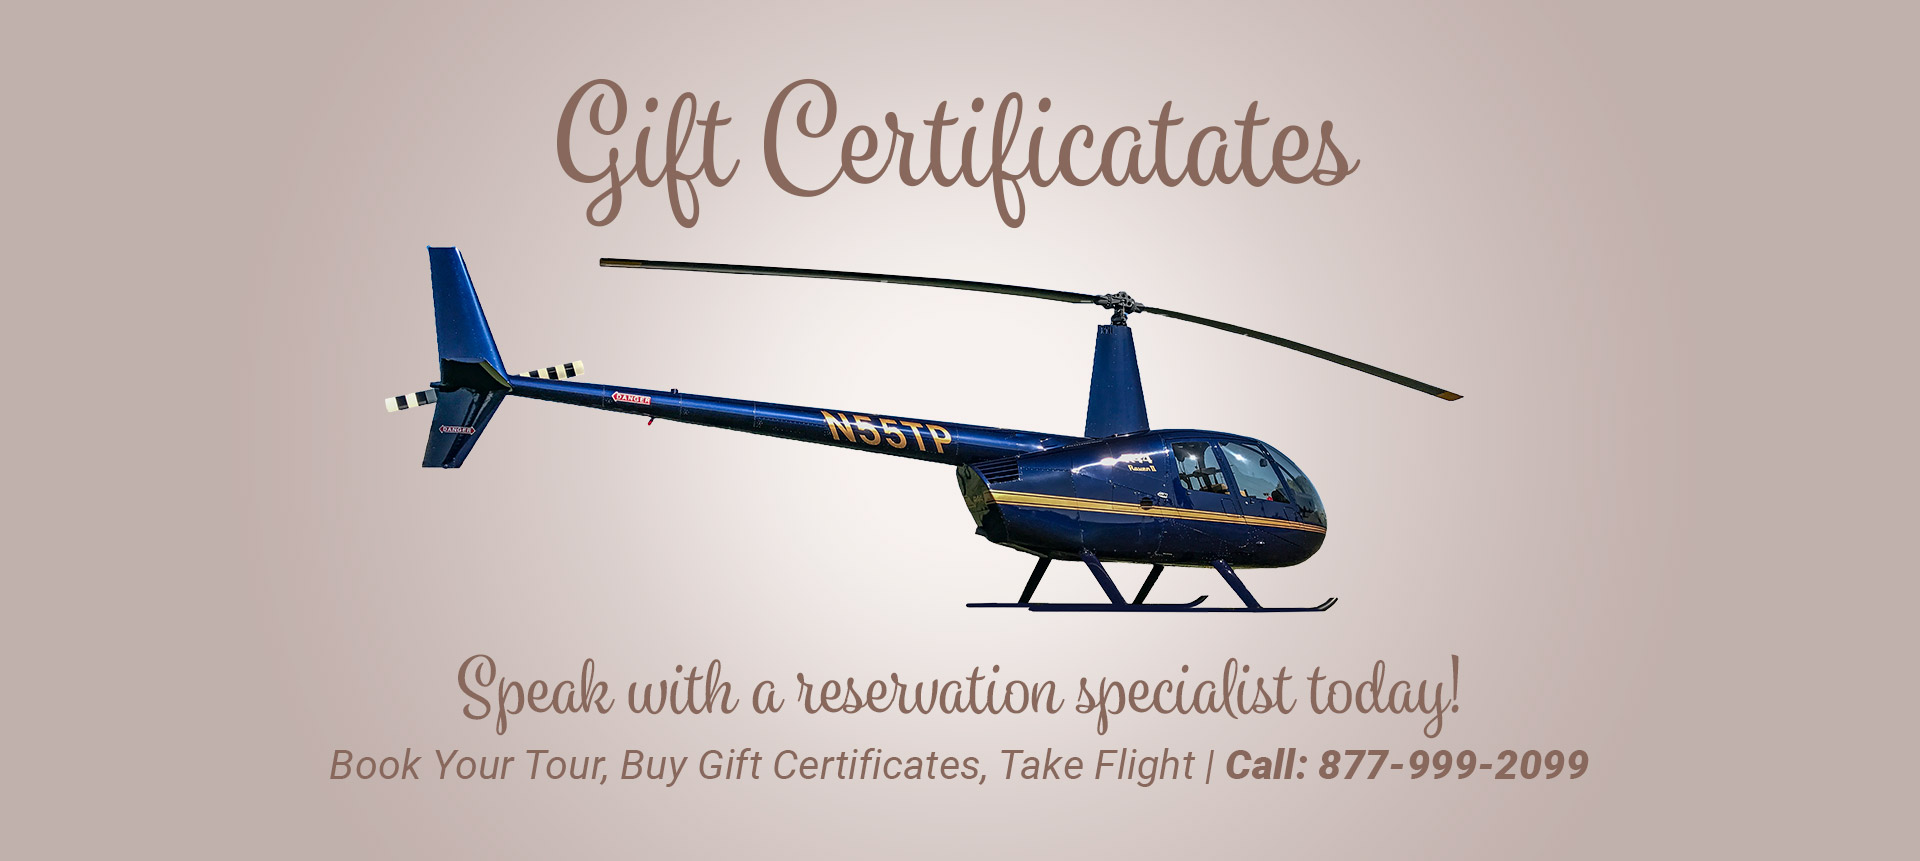 Gift Certificates. Los Angeles helicopter tours.